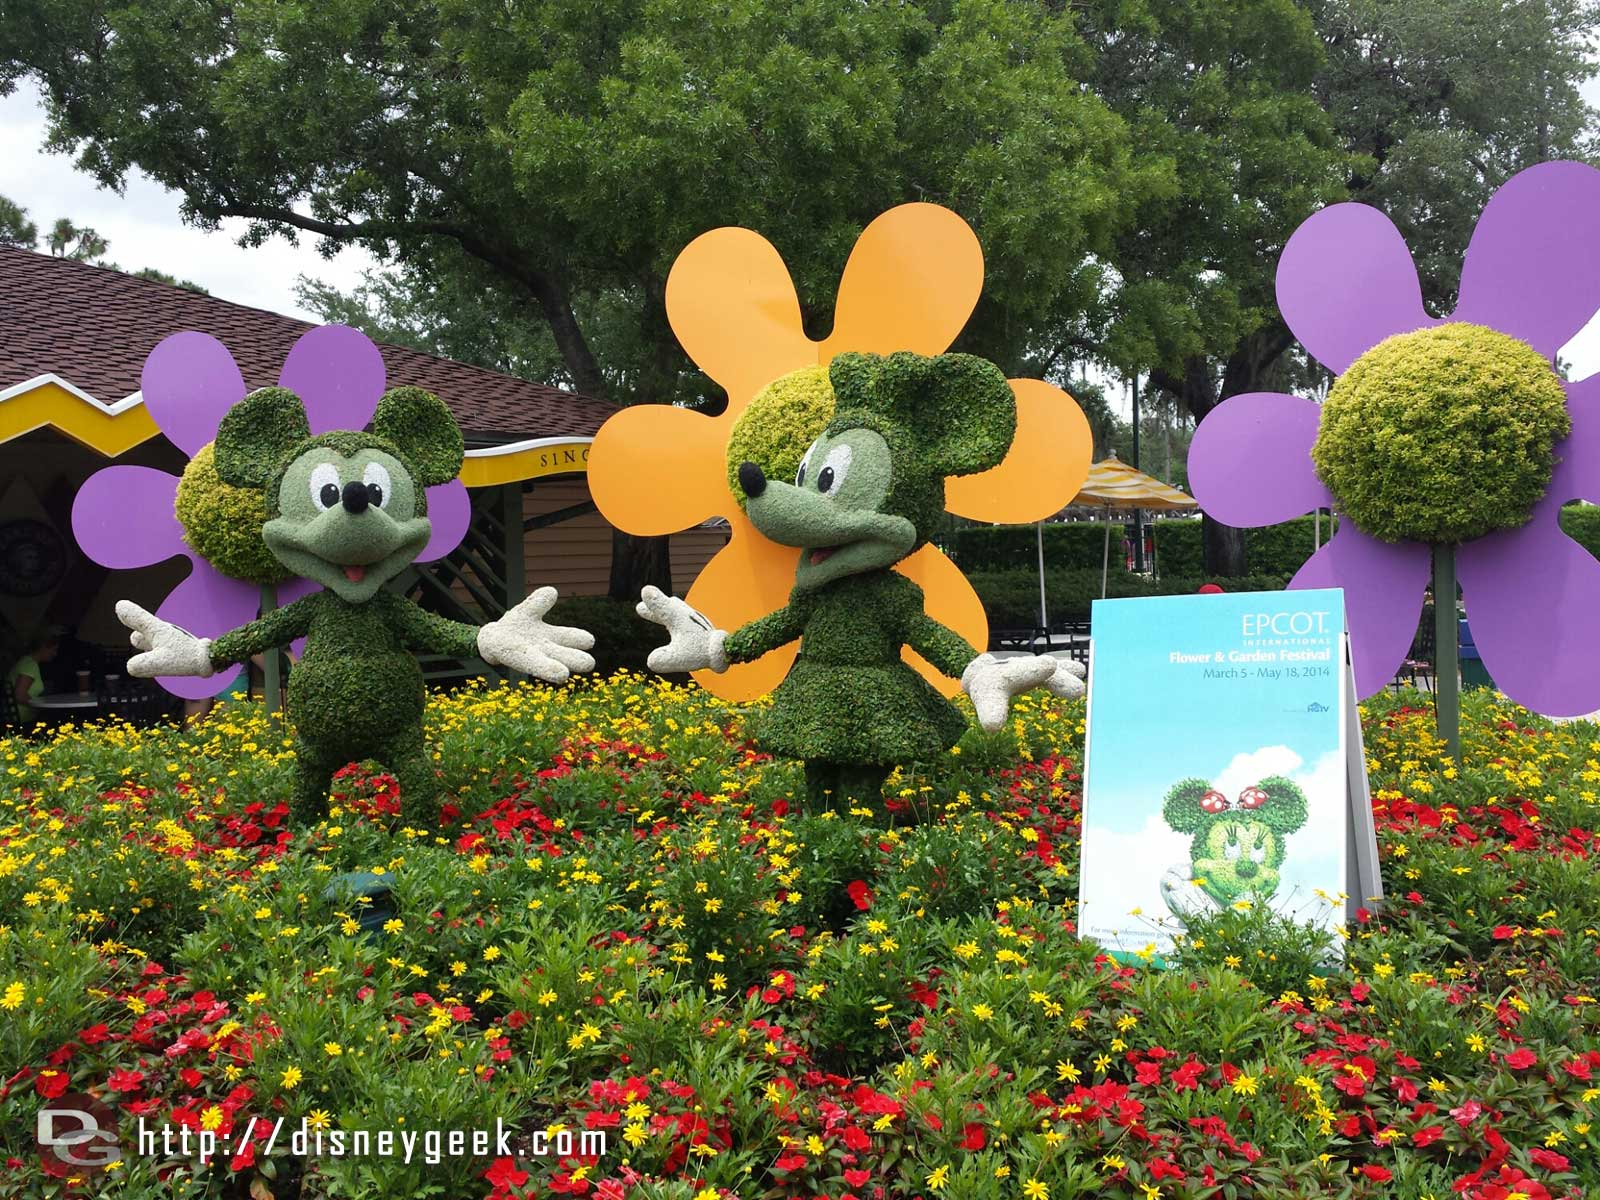 Mickey & Minnie Topiaries advertising the Epcot Flower and Garden Festival